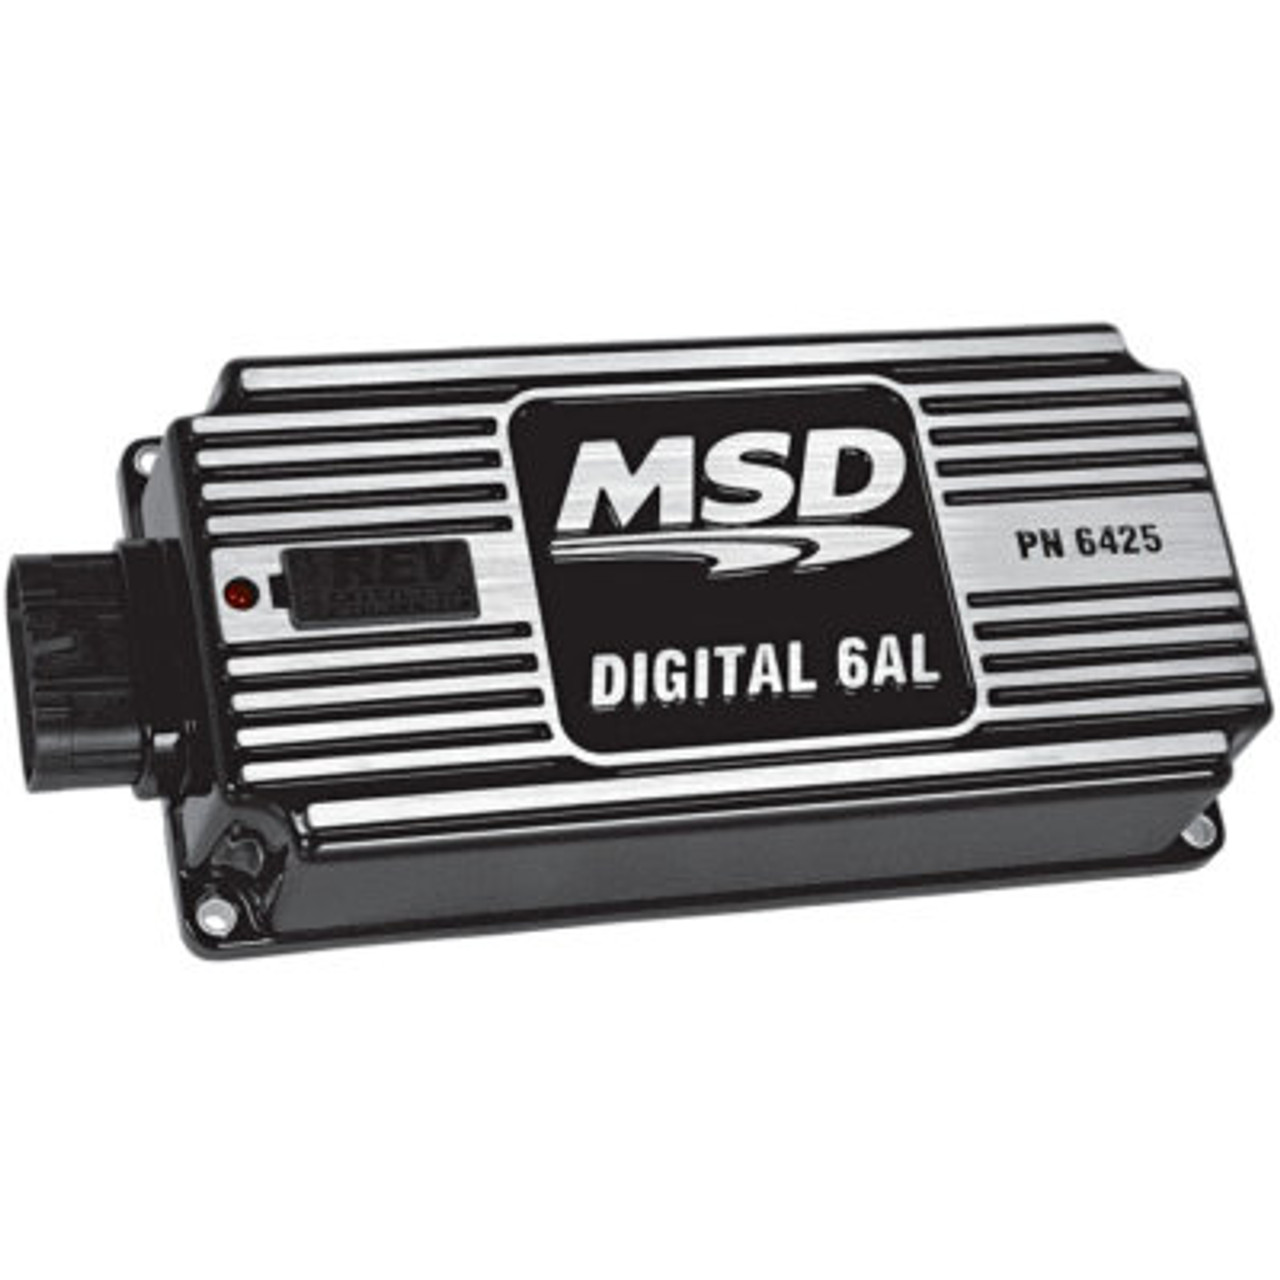 MSD64253, Ignition Box, Digital 6AL, Digital, CD Ignition, Multi-Spark, 45000V, Soft Touch Rev Limiter, Black, Each